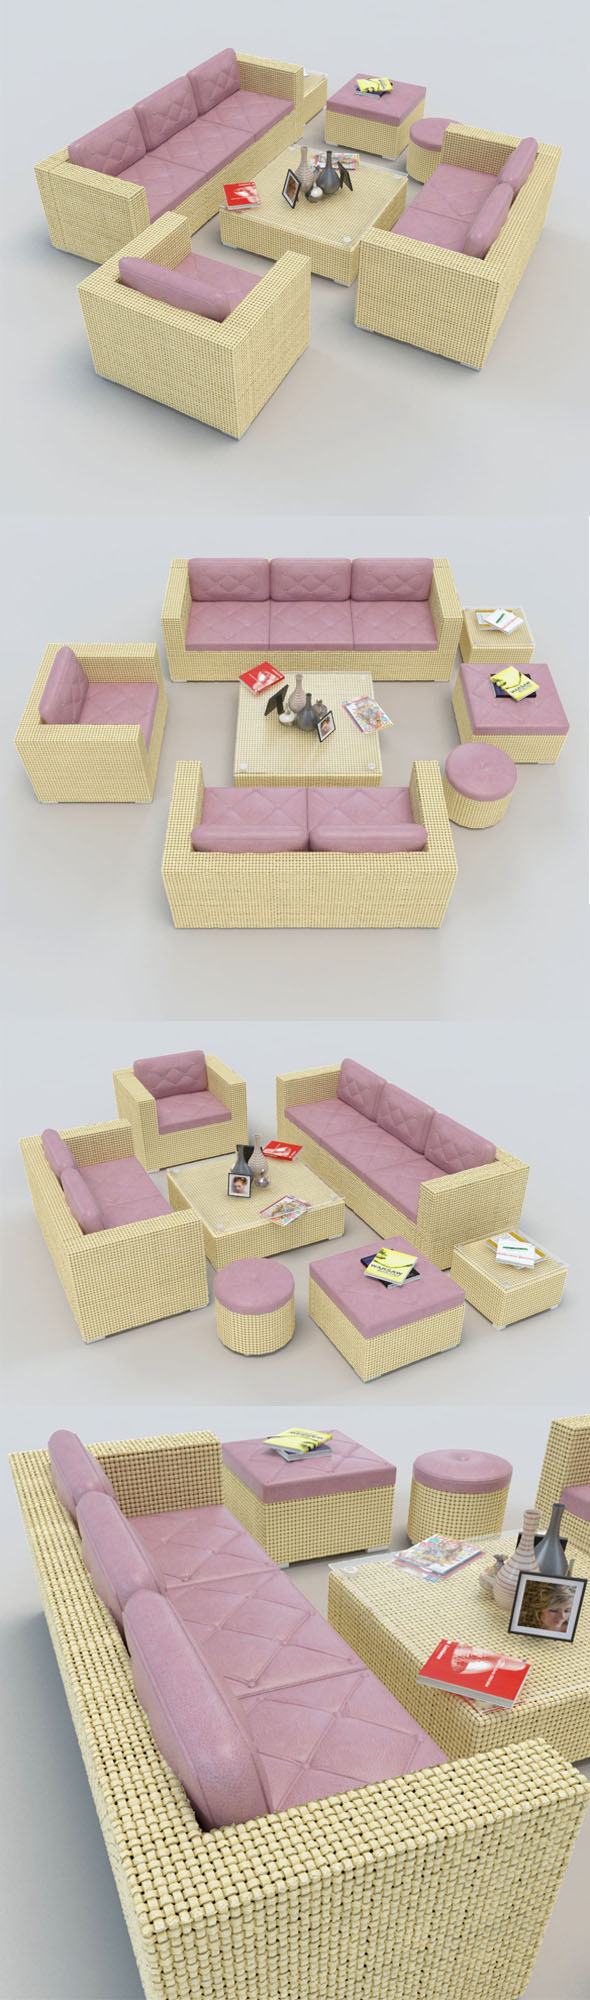 Rattan Sofa set_1 - 3DOcean Item for Sale